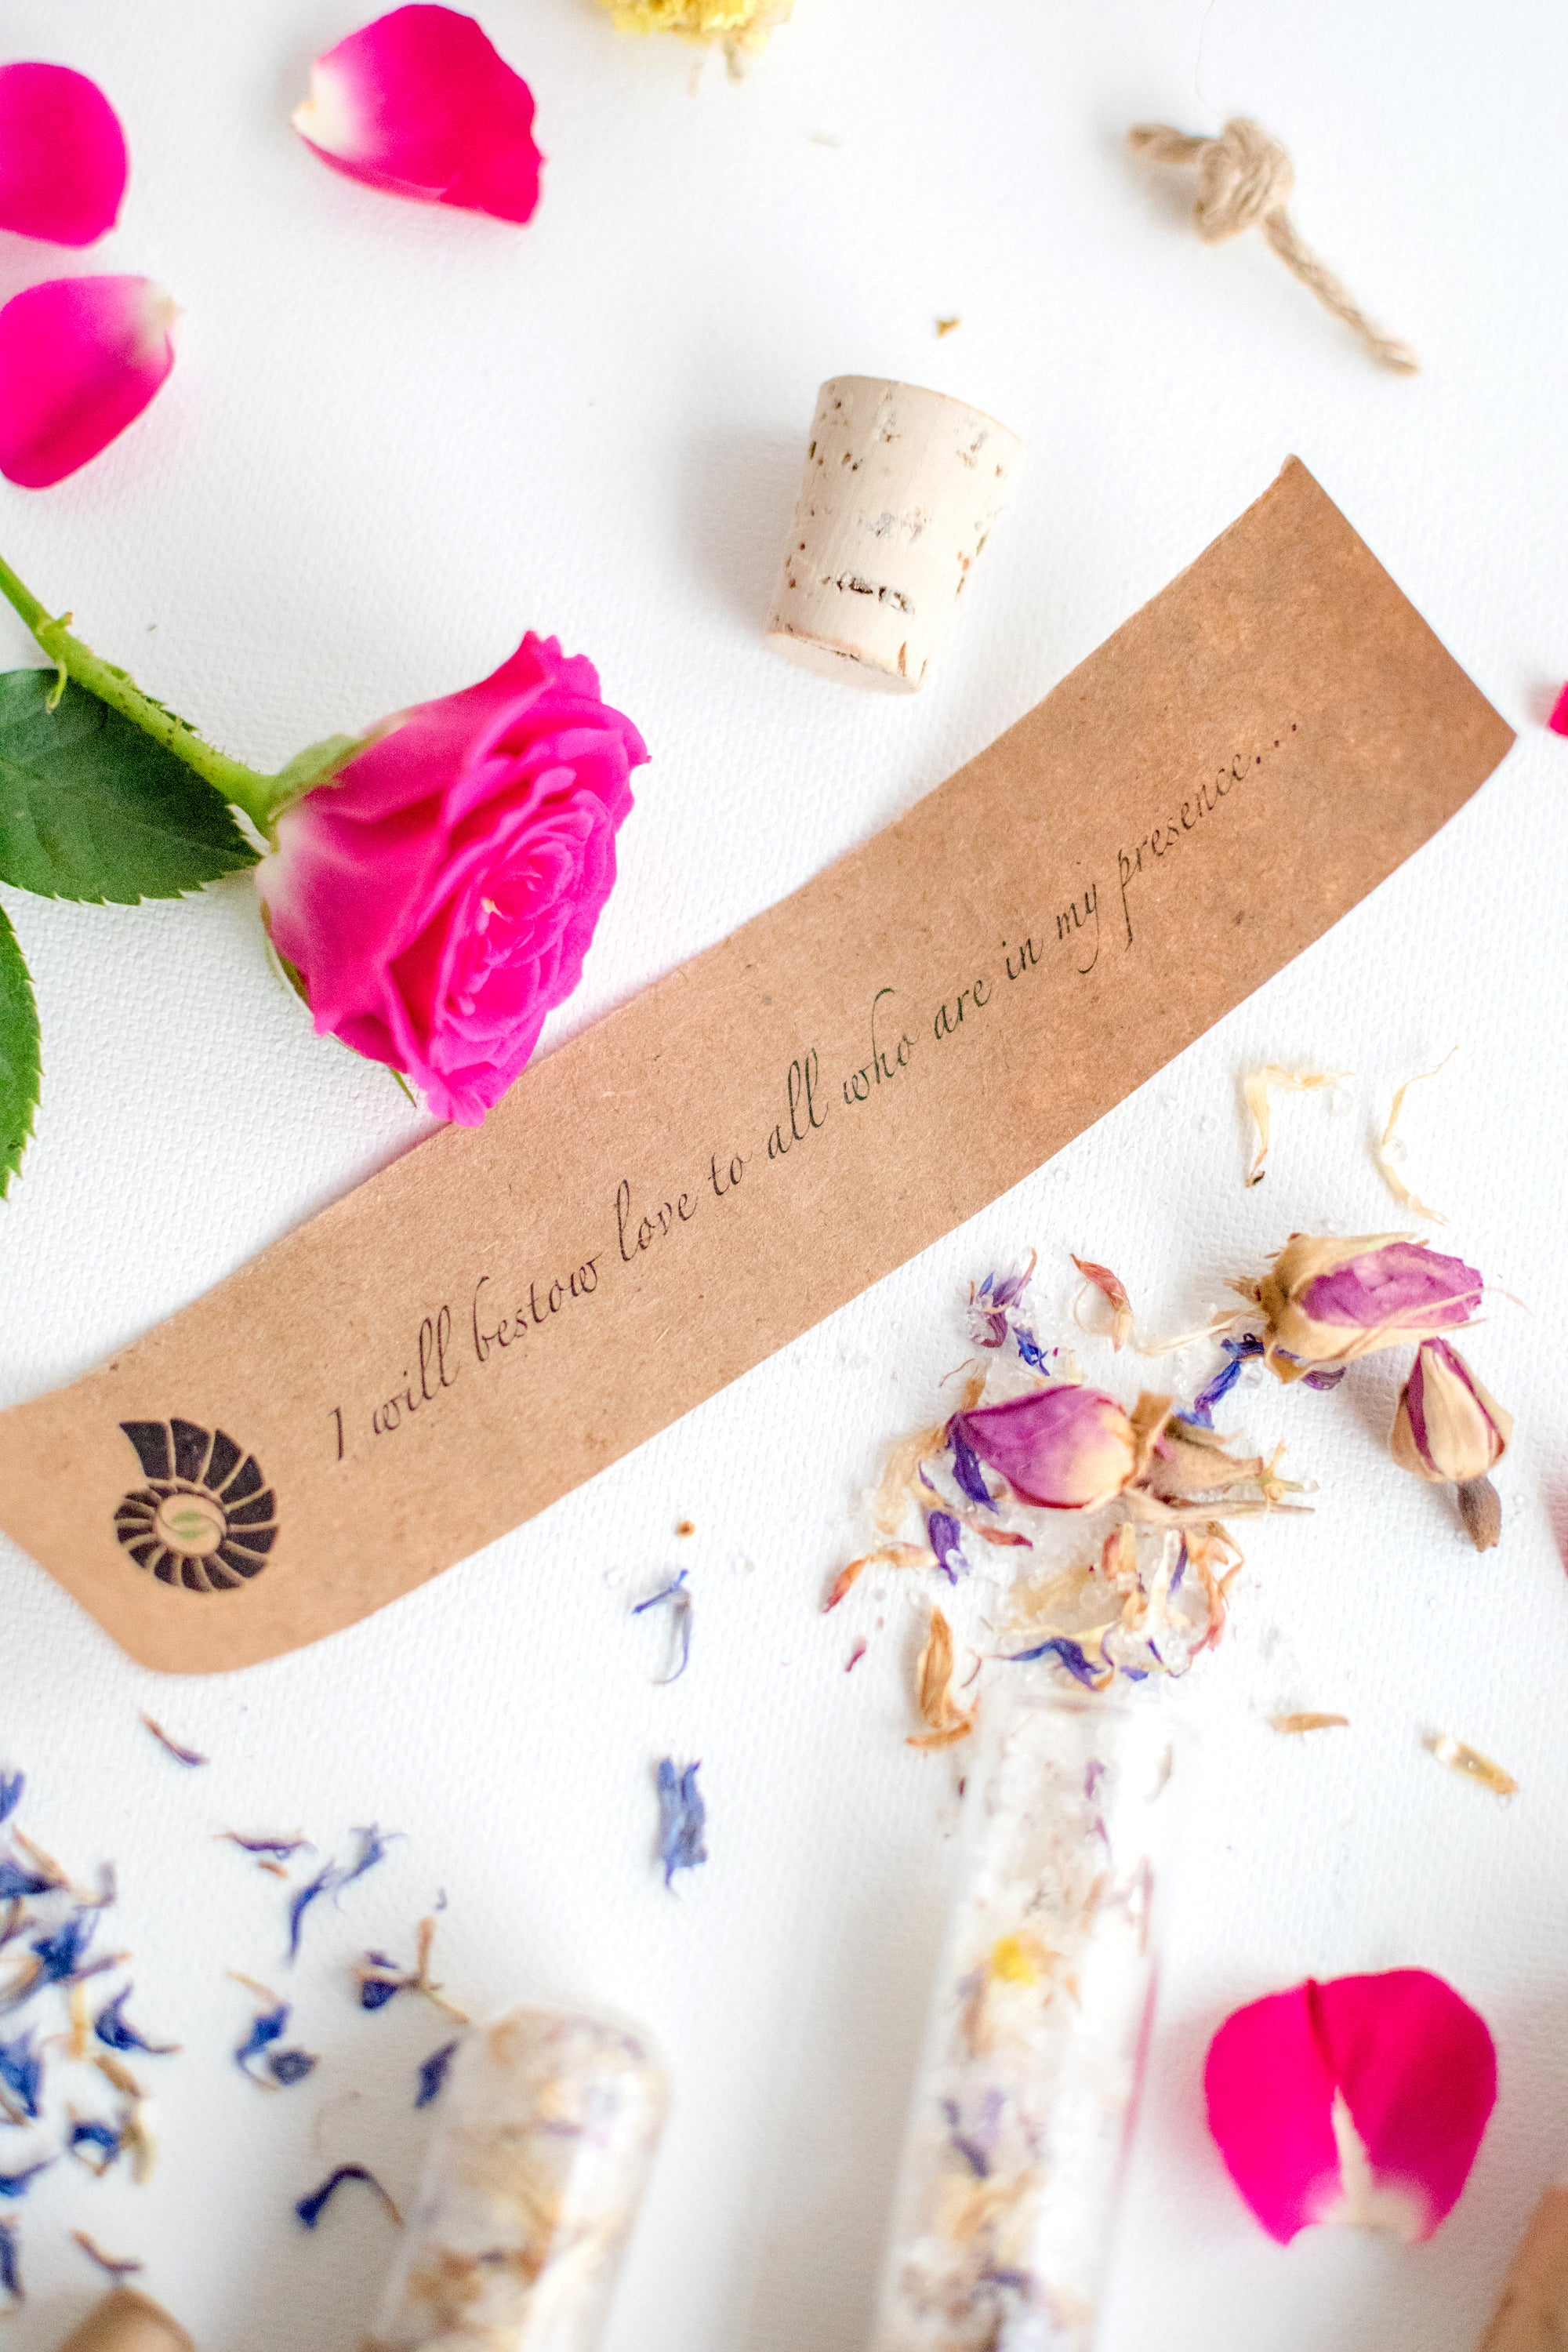 Truly Aesthetic Bestow Floral Petite Bath Affirmations Bath Salts and Positive Affirmation Close Up